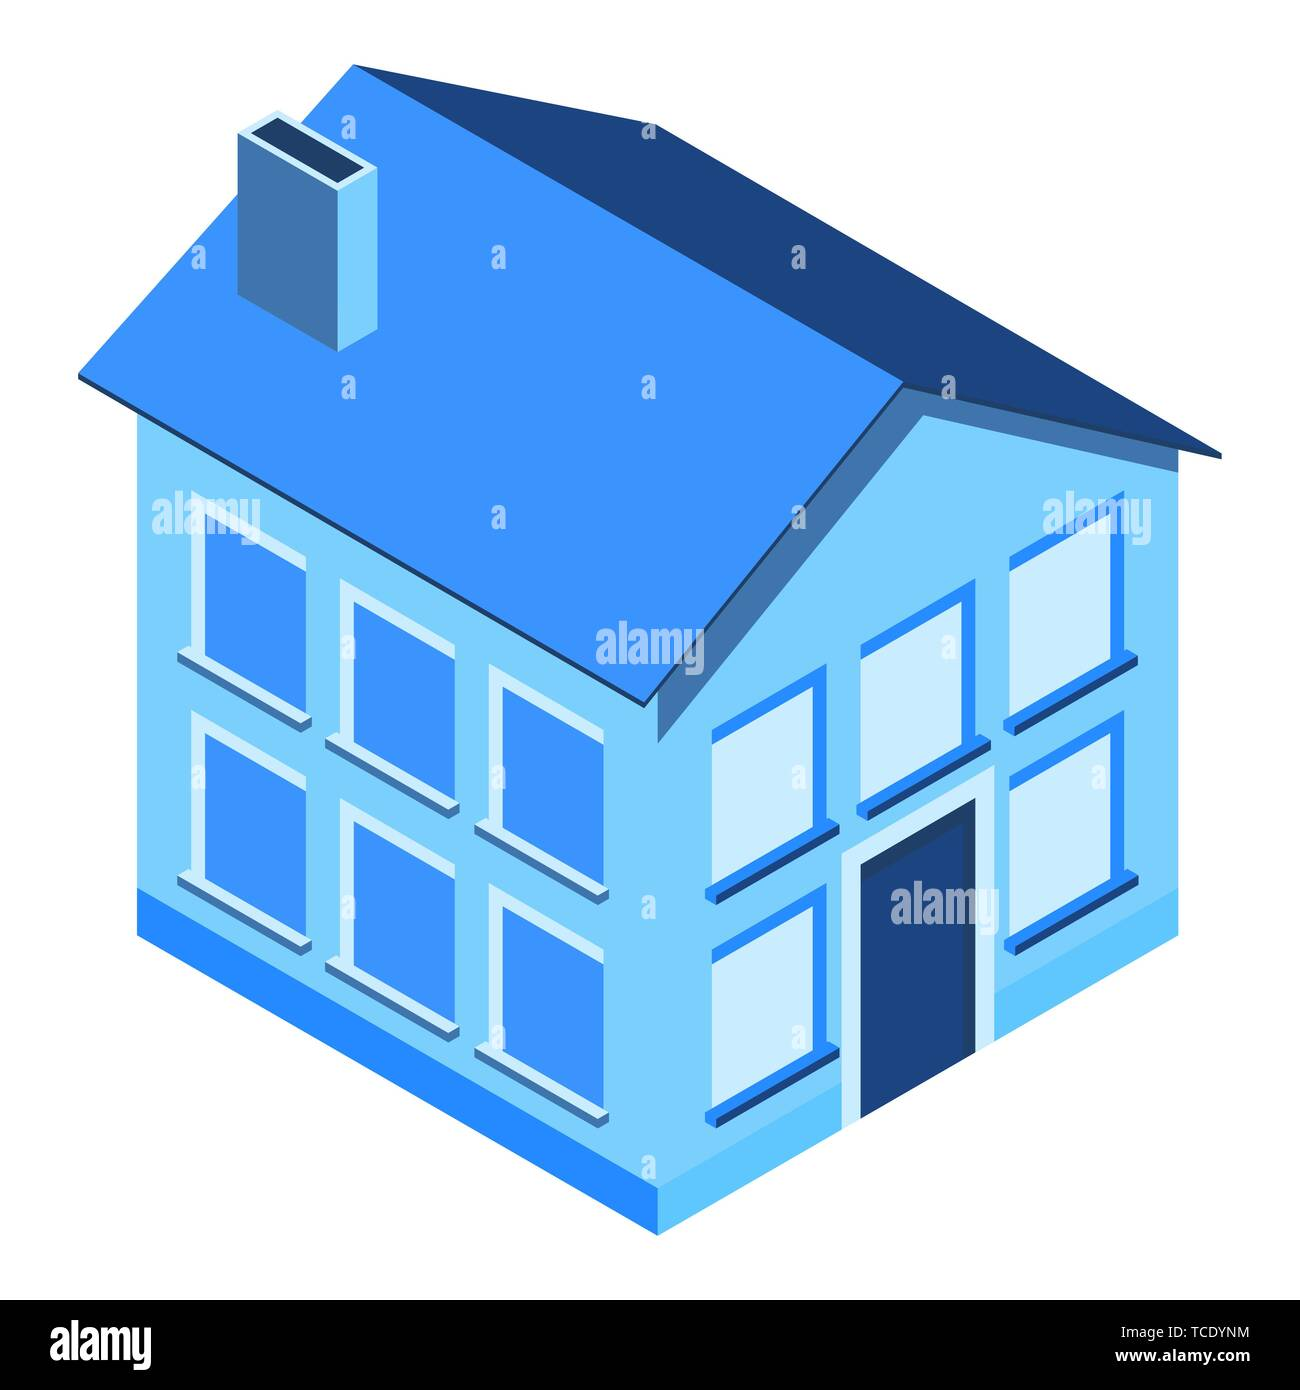 Isometric house on a white background. Private property. - Stock Image